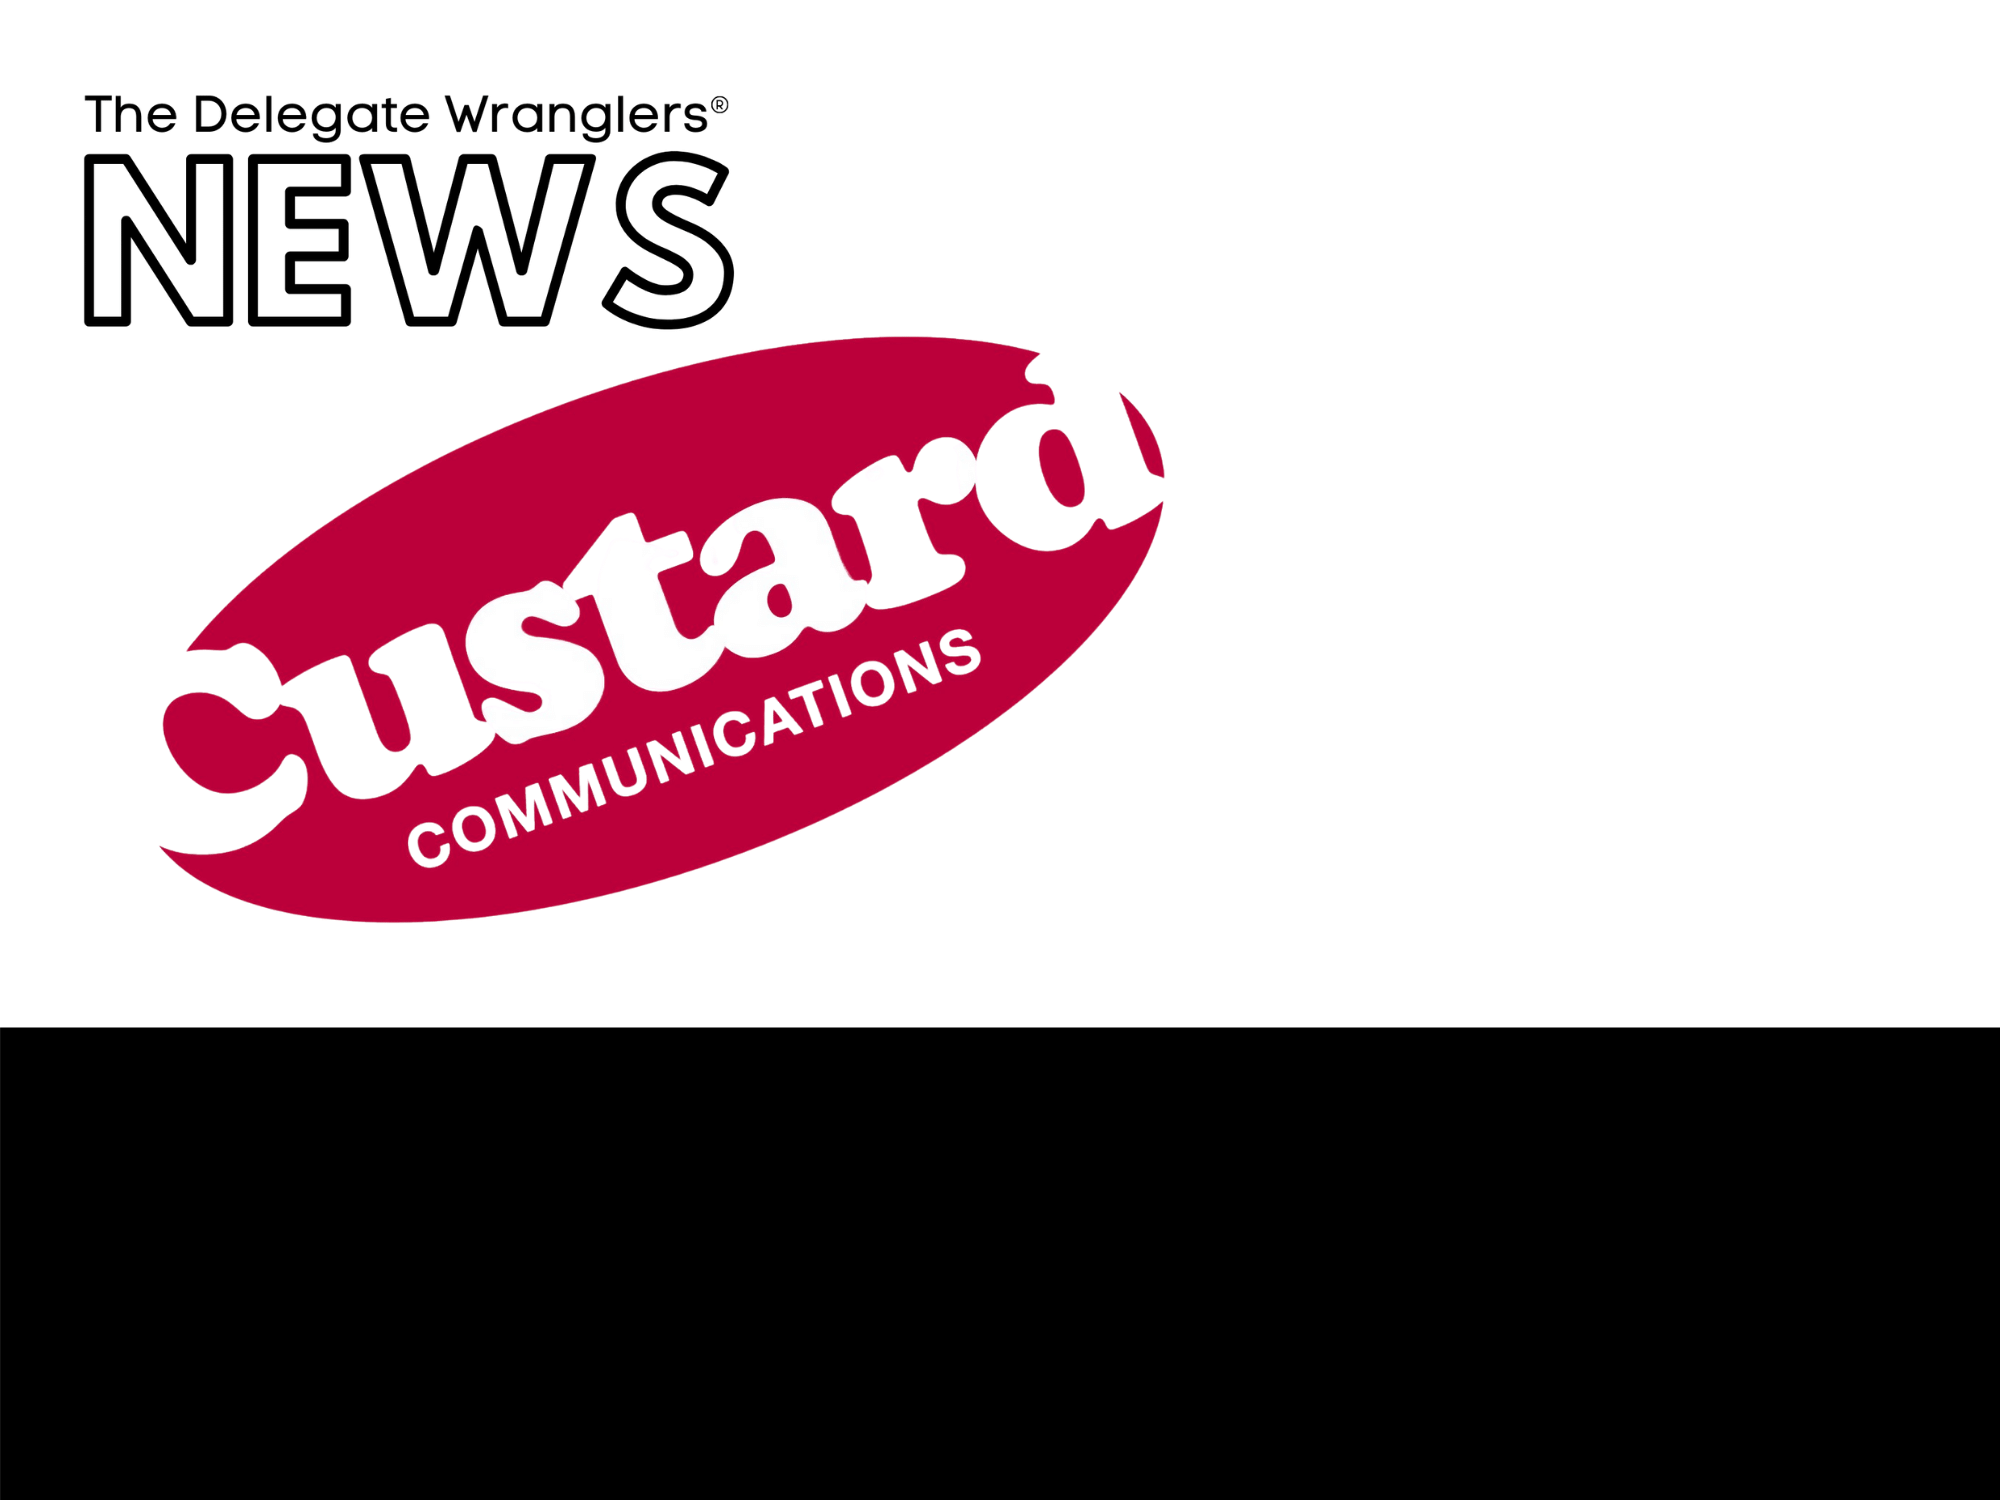 Custard Communications appointed by The Lensbury